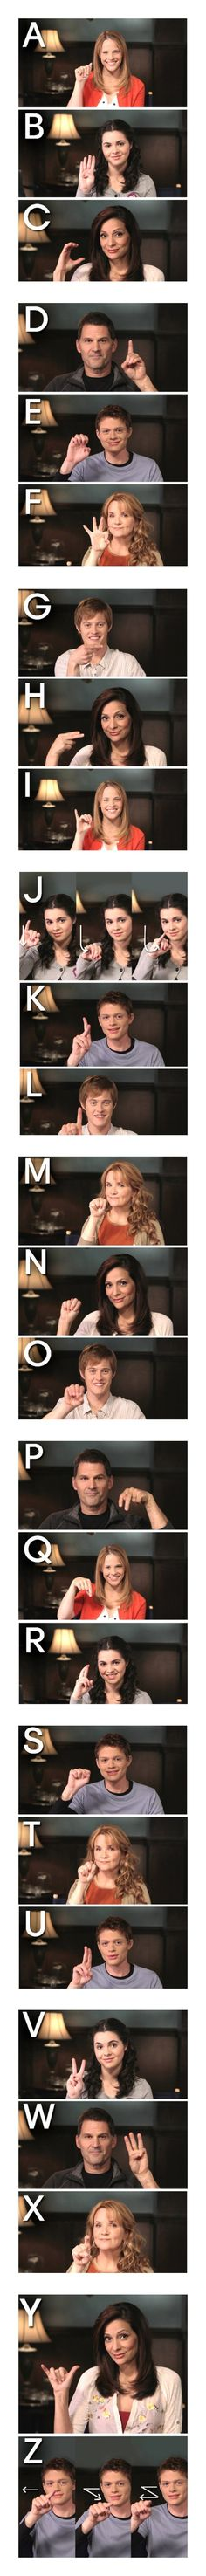 American Sign Language alphabet from the Switched at Birth cast